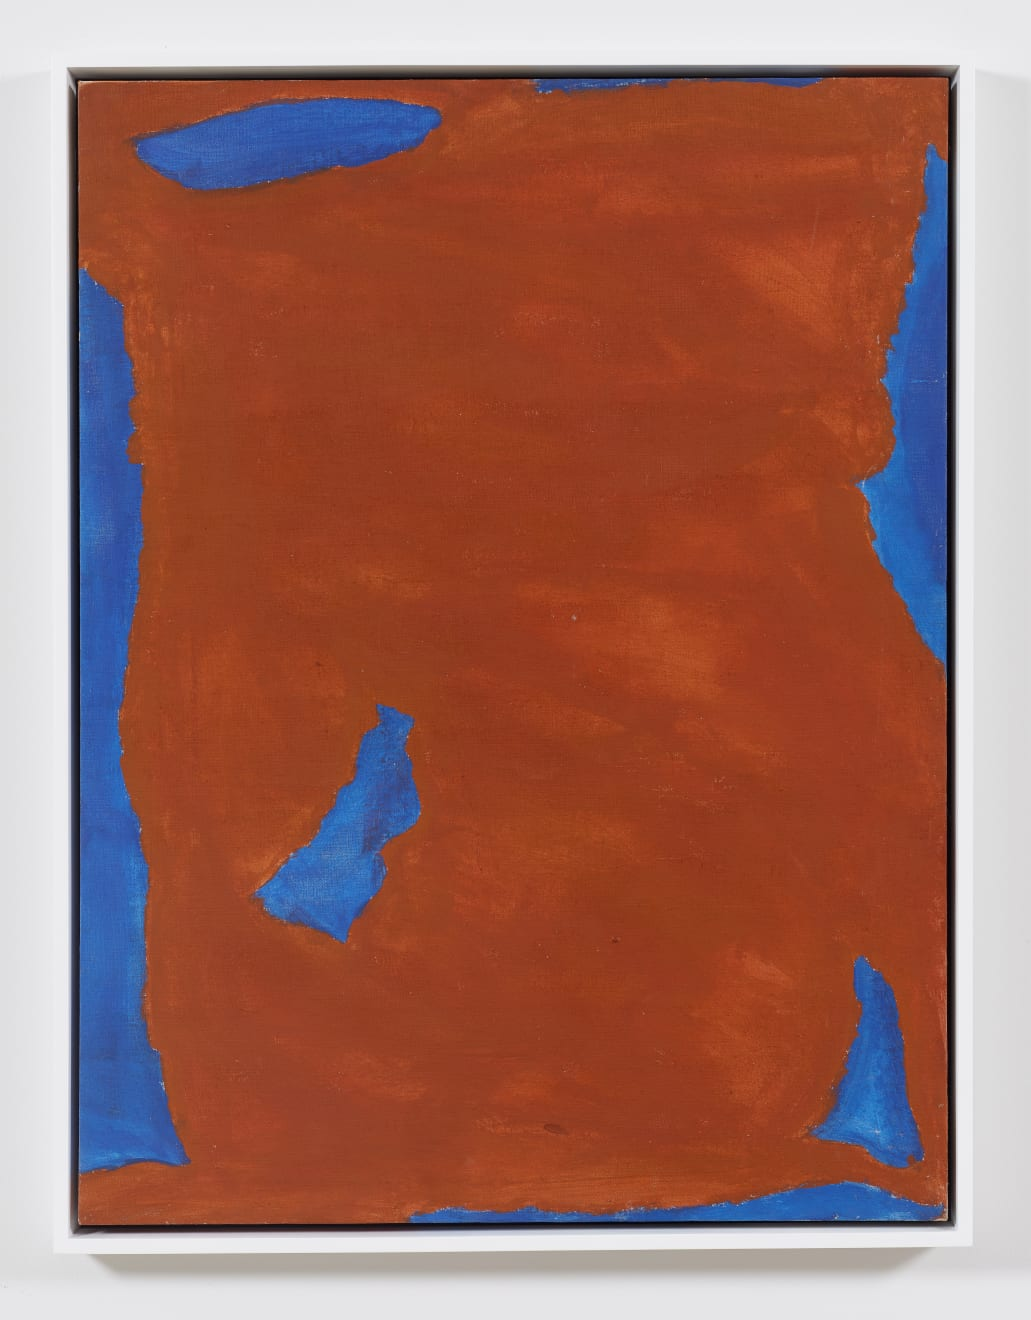 Betty Parsons Brick in the Sky, 1968 Acrylic on linen 39.50h x 30w in (100.33h x 76.2w cm)